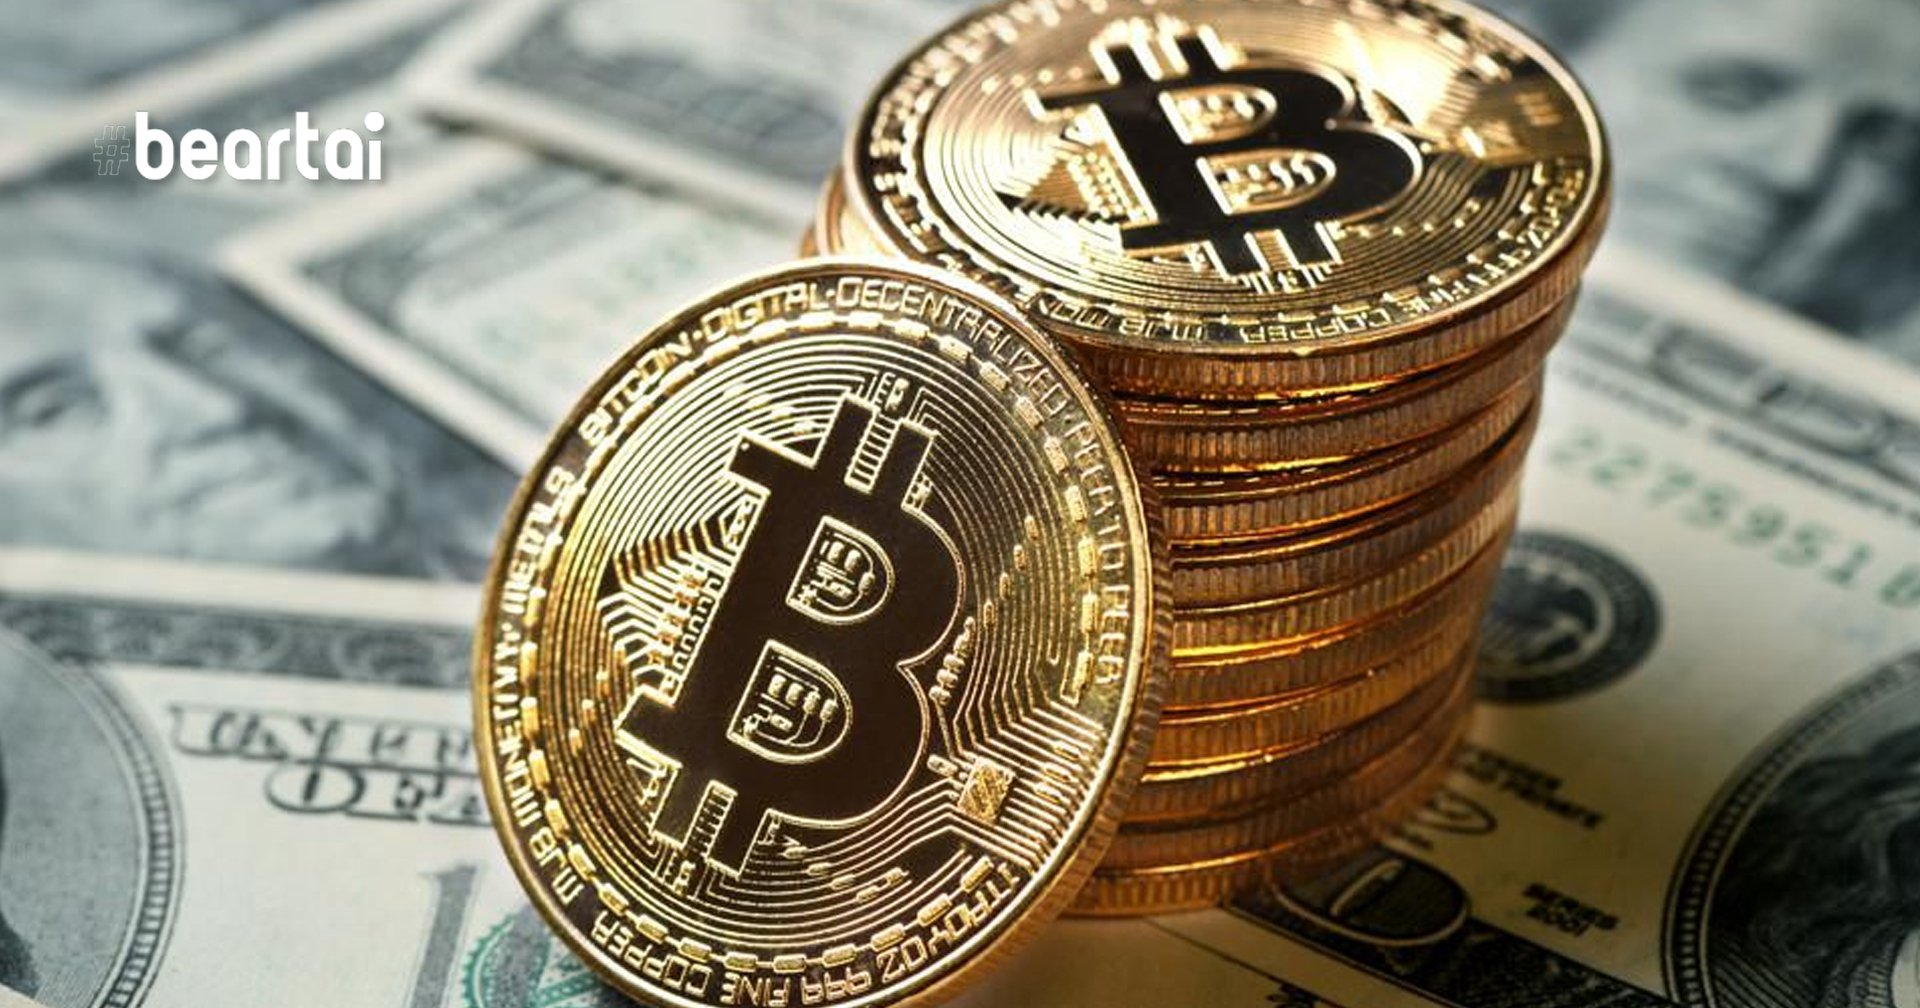 Lost Passwords Lock Millionaires Out of Their Bitcoin Fortunes